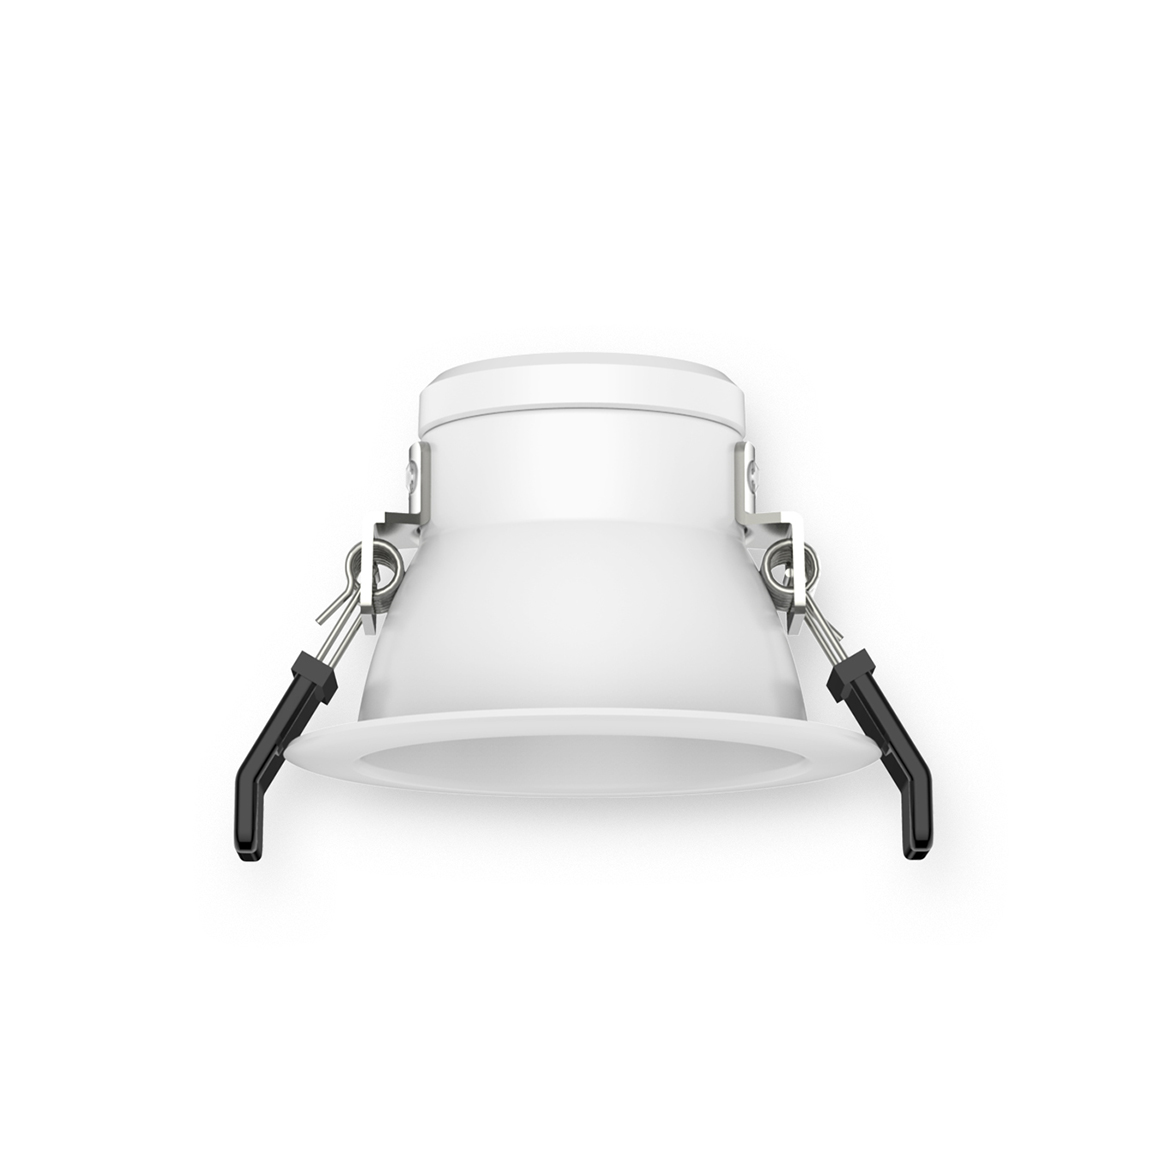 DownLight DS1 800lm